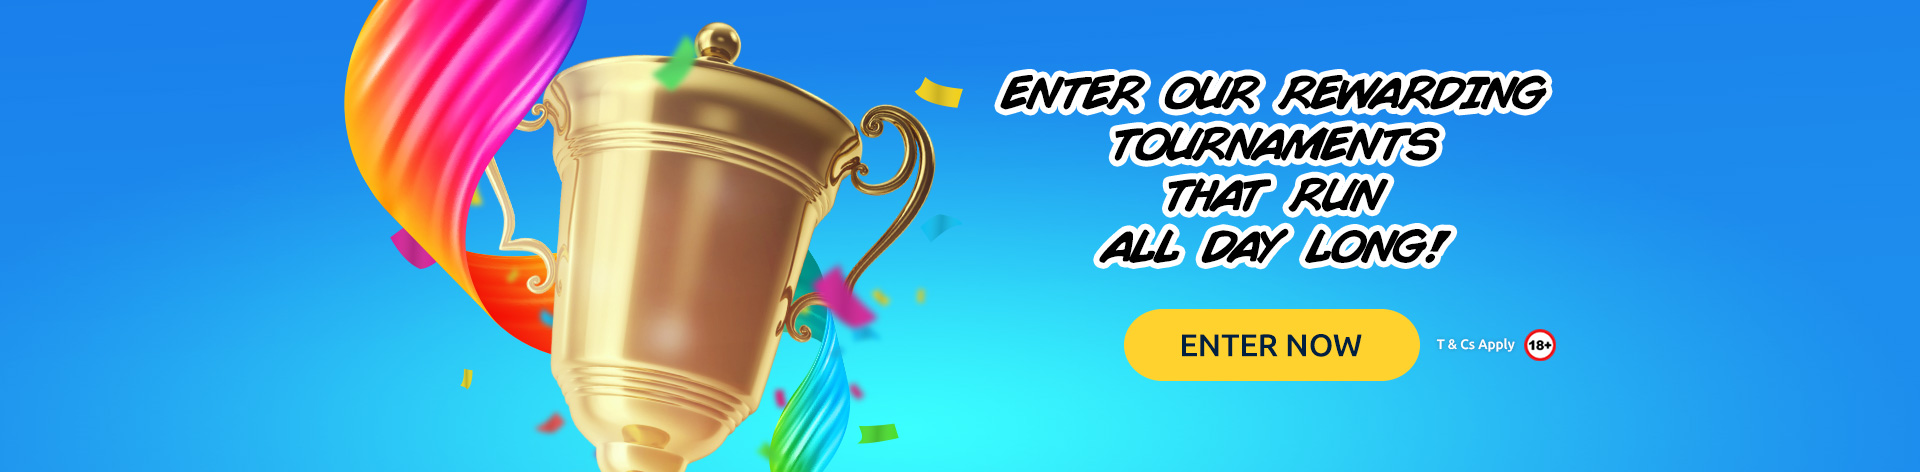 Enter our rewarding Tournaments that run all day long! (Terms & Conditions apply.)